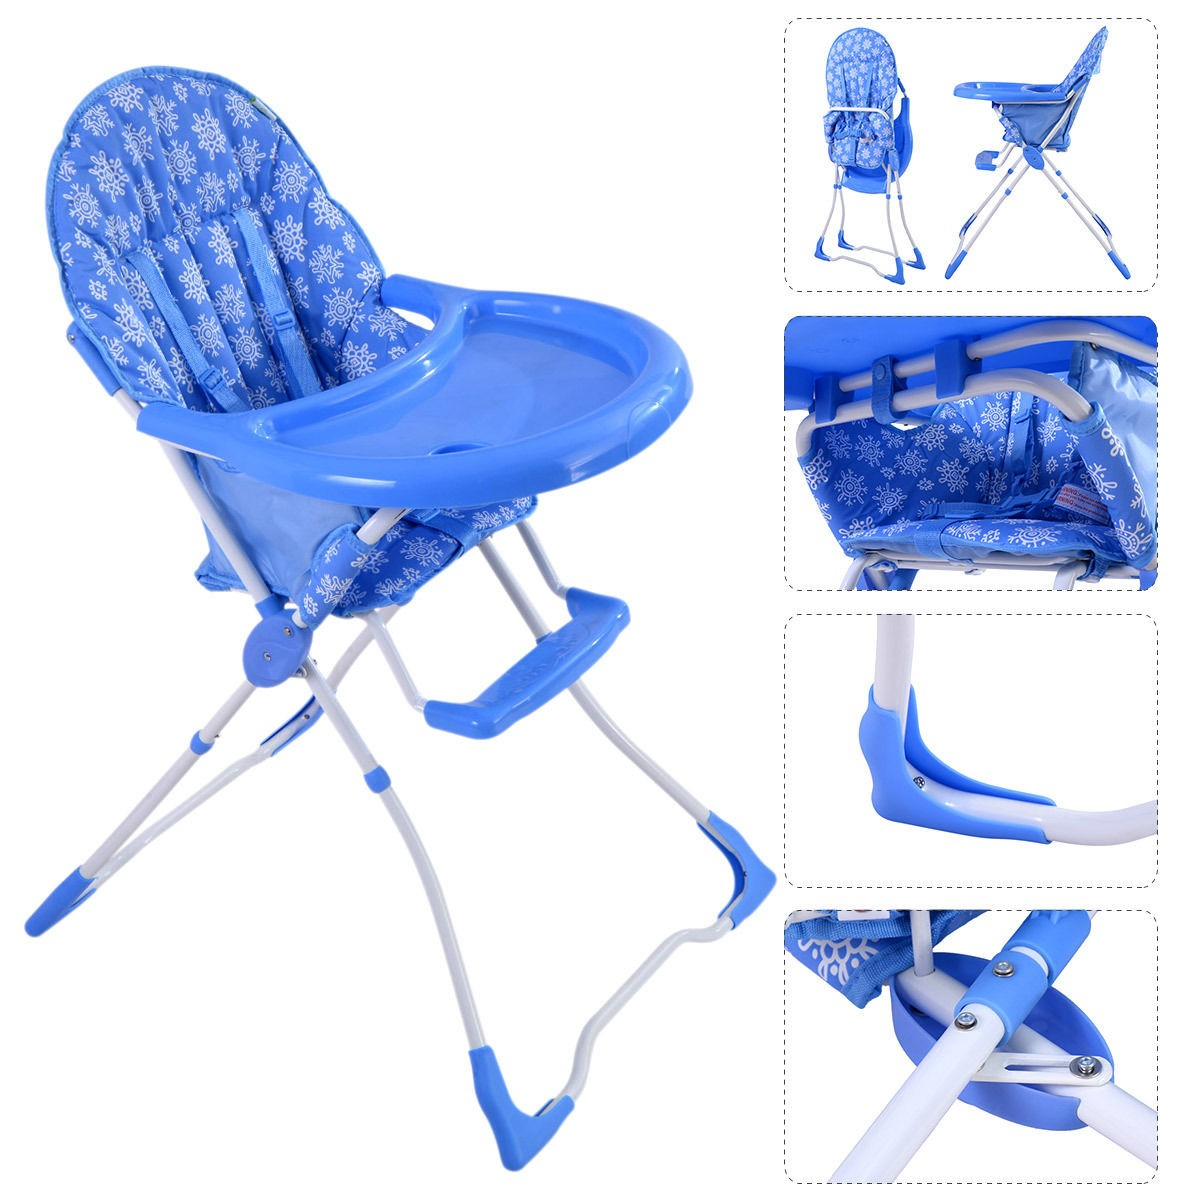 Miraculous Details About Baby High Chair Infant Toddler Feeding Booster Seat Folding Safe Portable Kids Andrewgaddart Wooden Chair Designs For Living Room Andrewgaddartcom